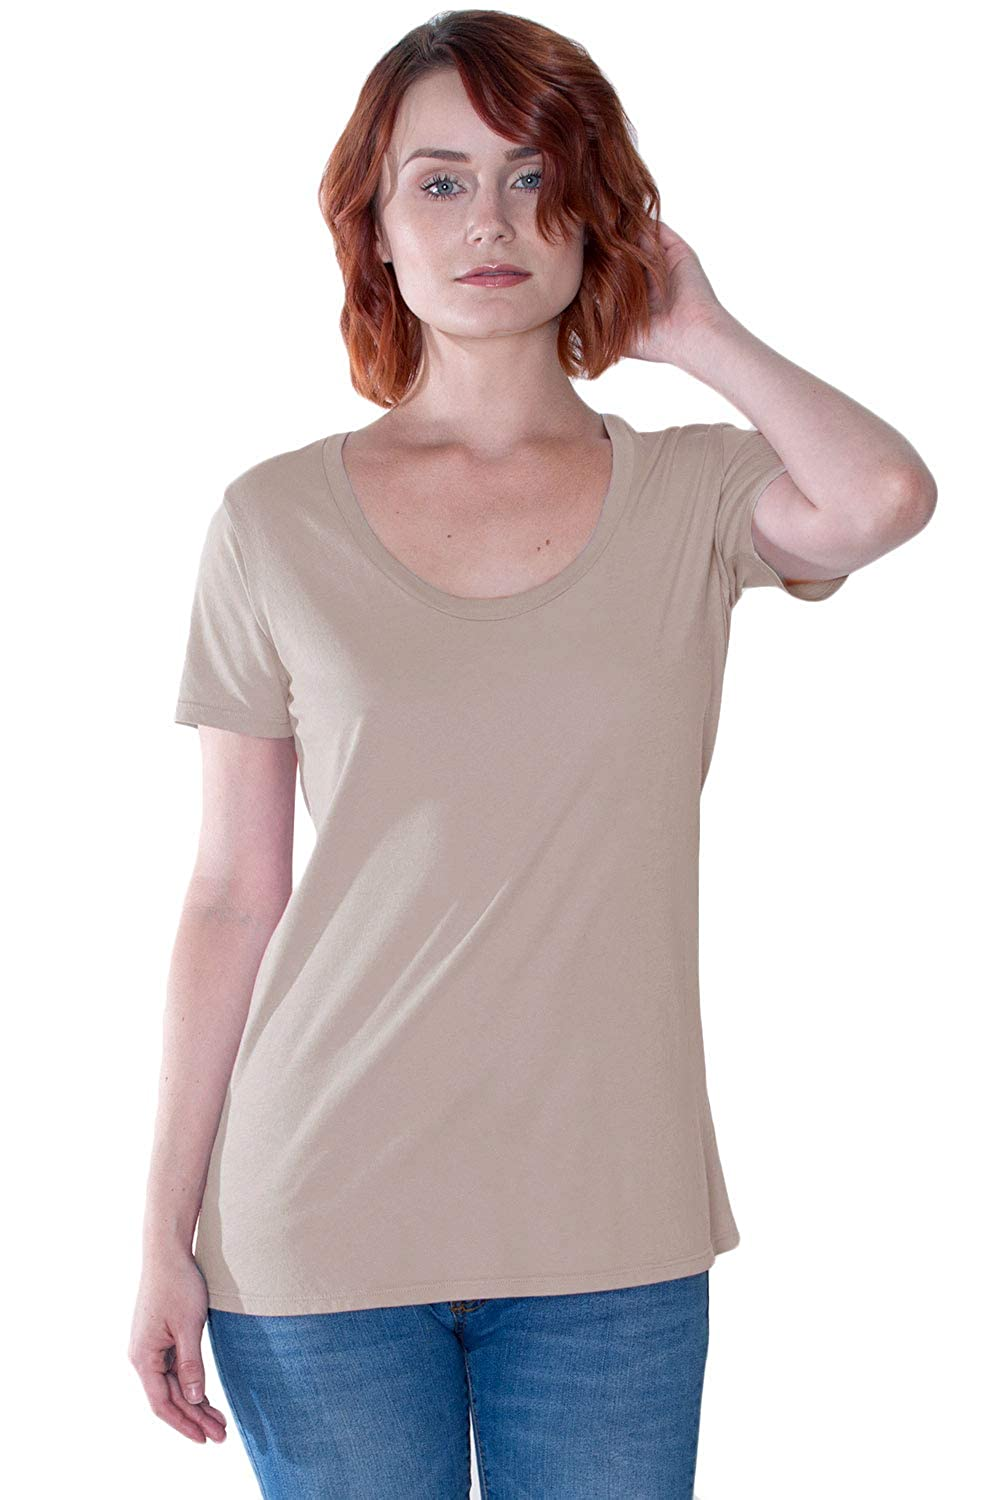 801dc849f2e The Made in The USA Starling Scoop Neck Tee in Non-GMO Organic Cotton at  Amazon Women's Clothing store: